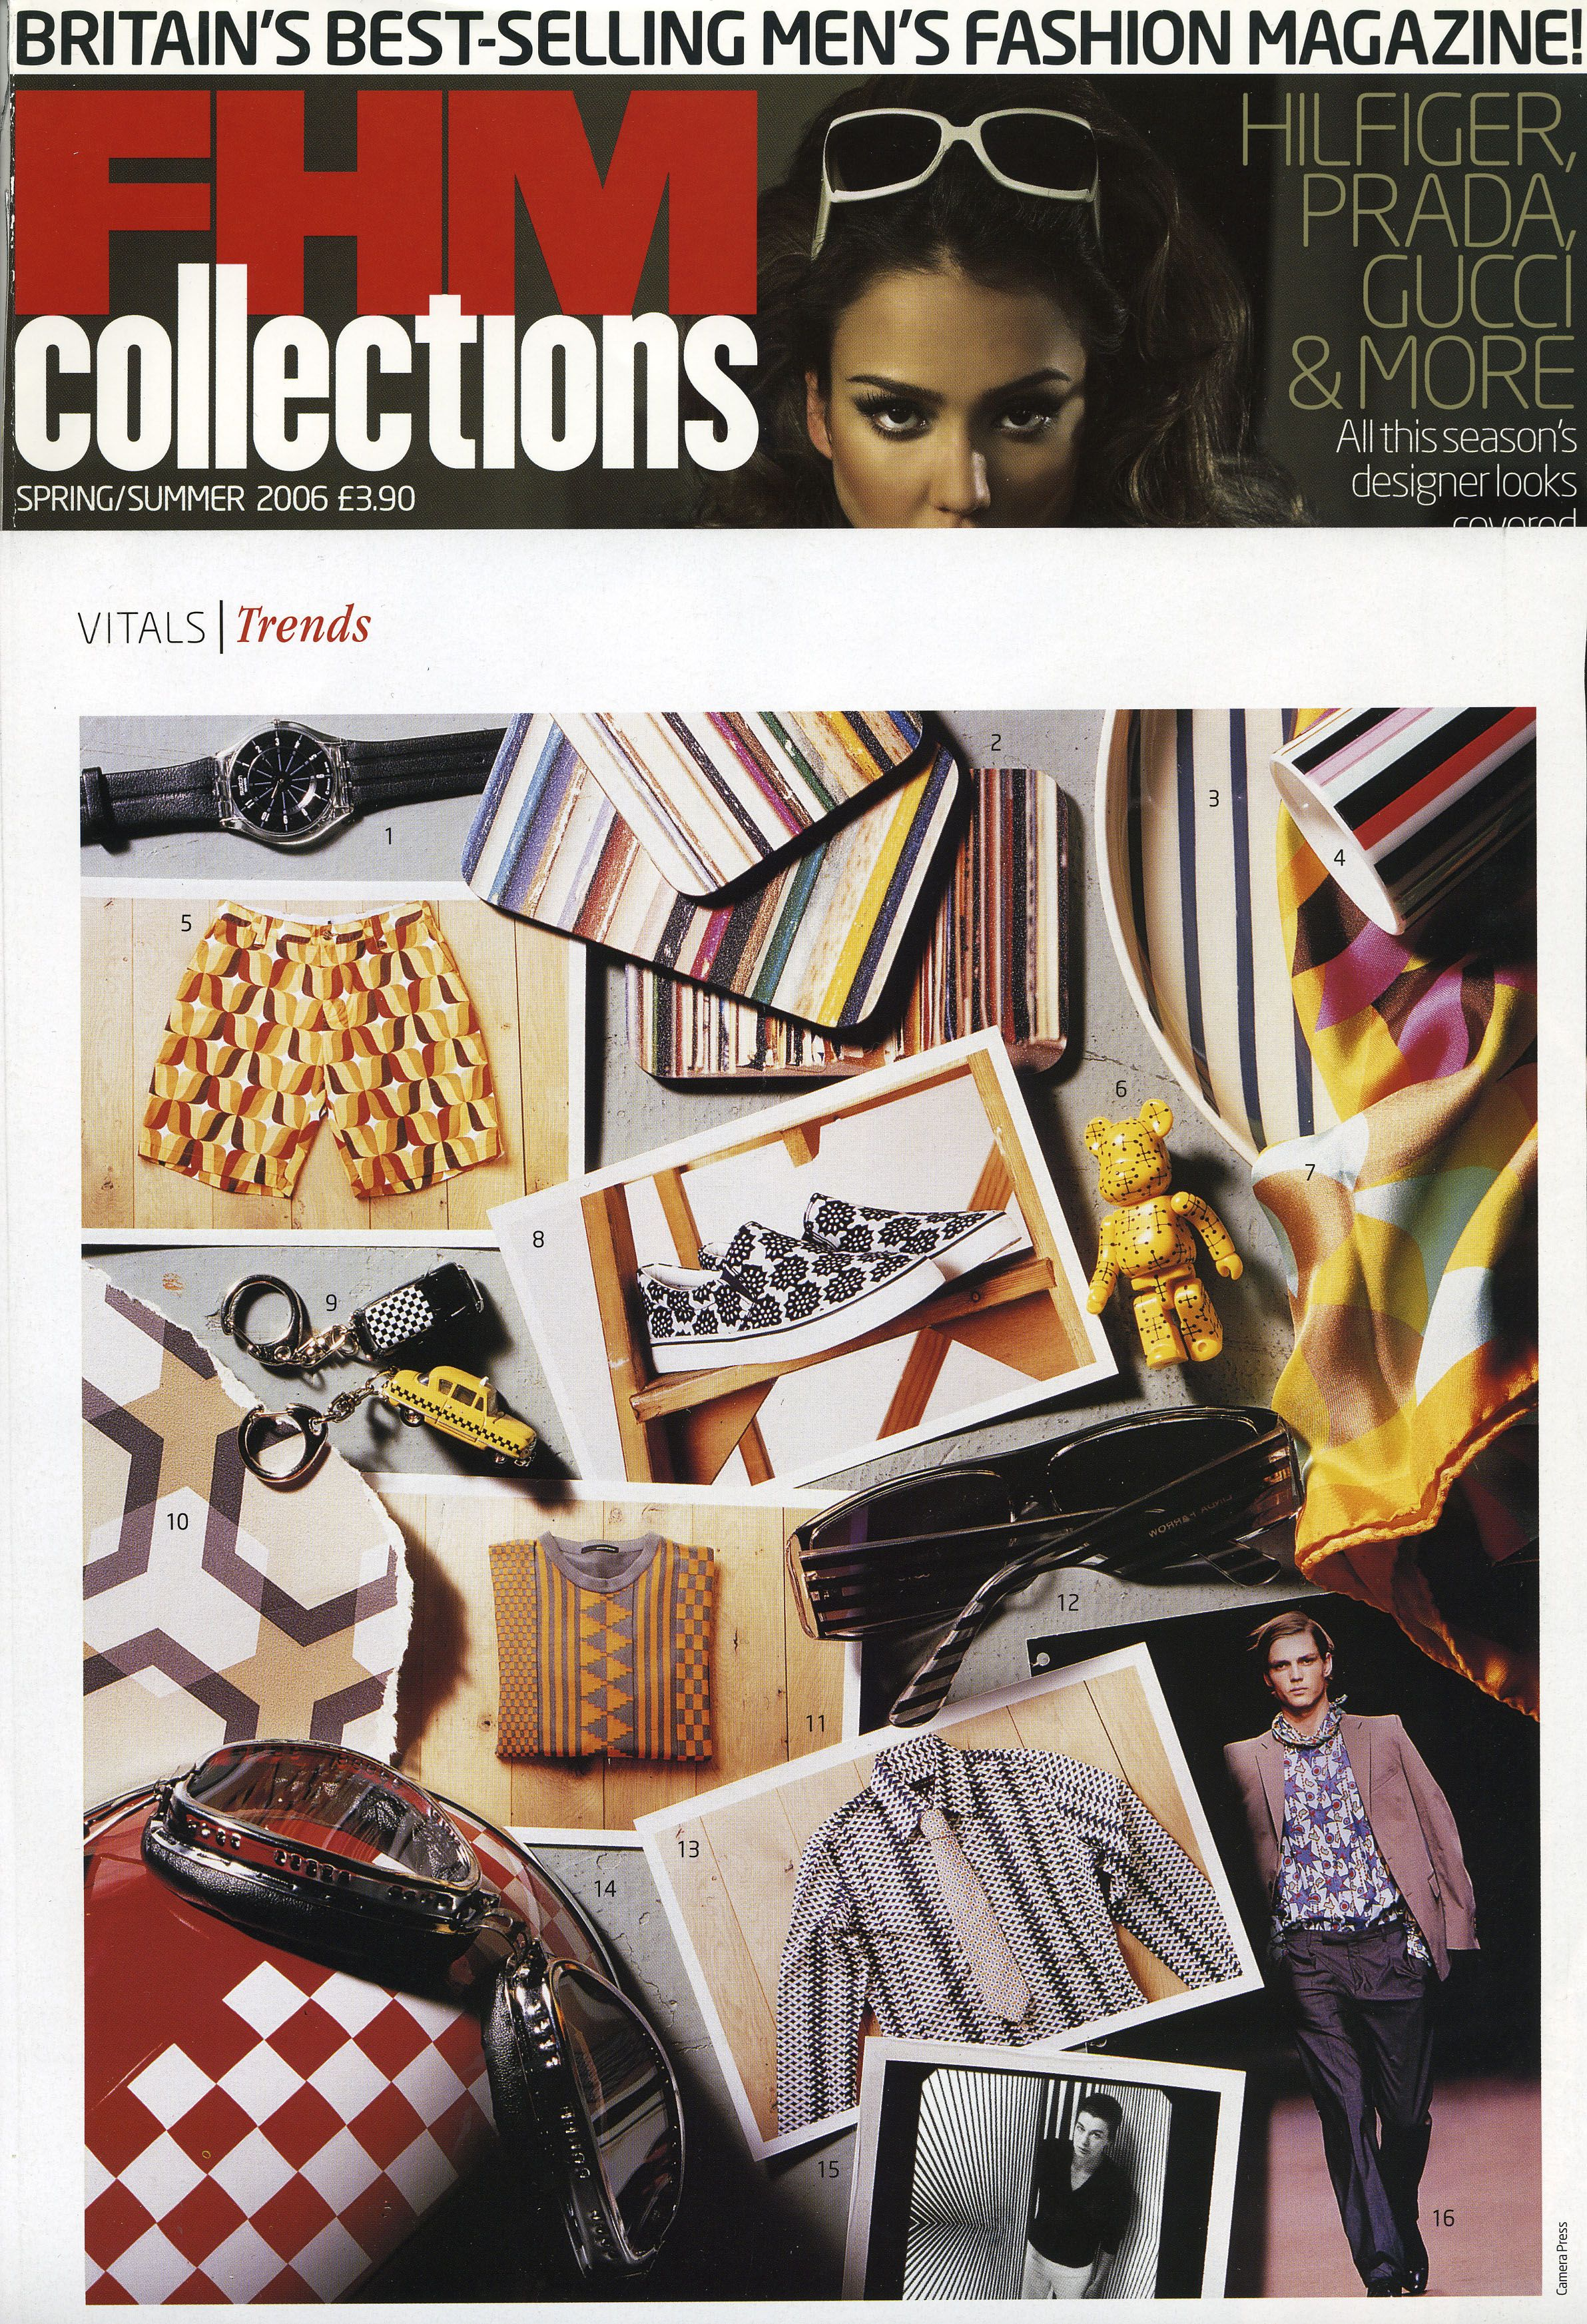 FHM Spring and Summer edition, Stacks and Stripes mats by Ella Doran